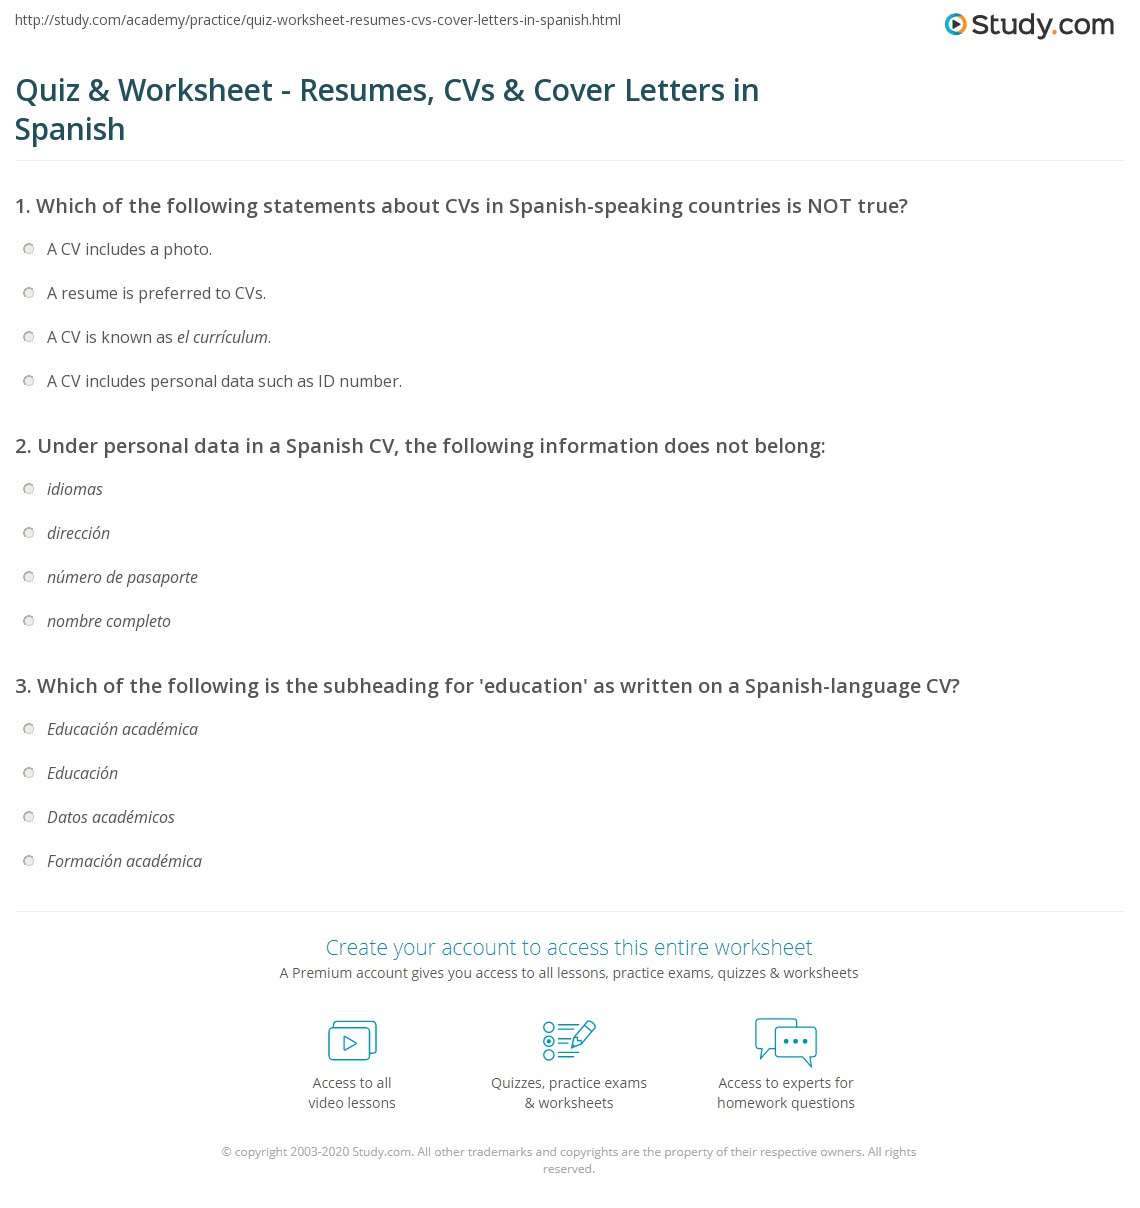 quiz worksheet resumes cvs cover letters in spanish study com